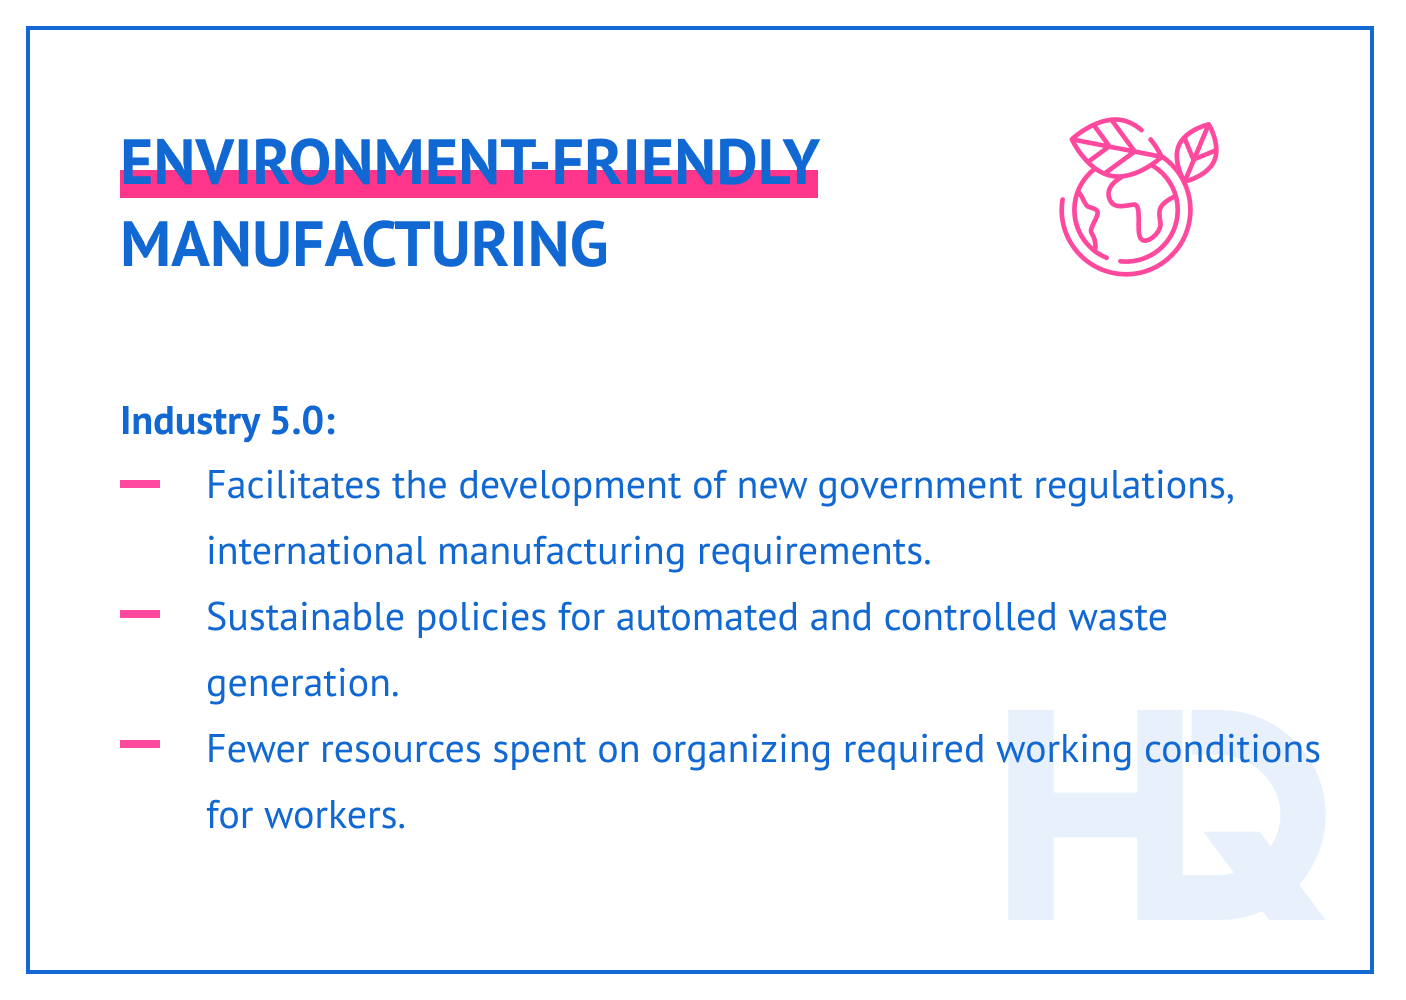 Environment-friendly manufacturing is possible in Industry 5.0.